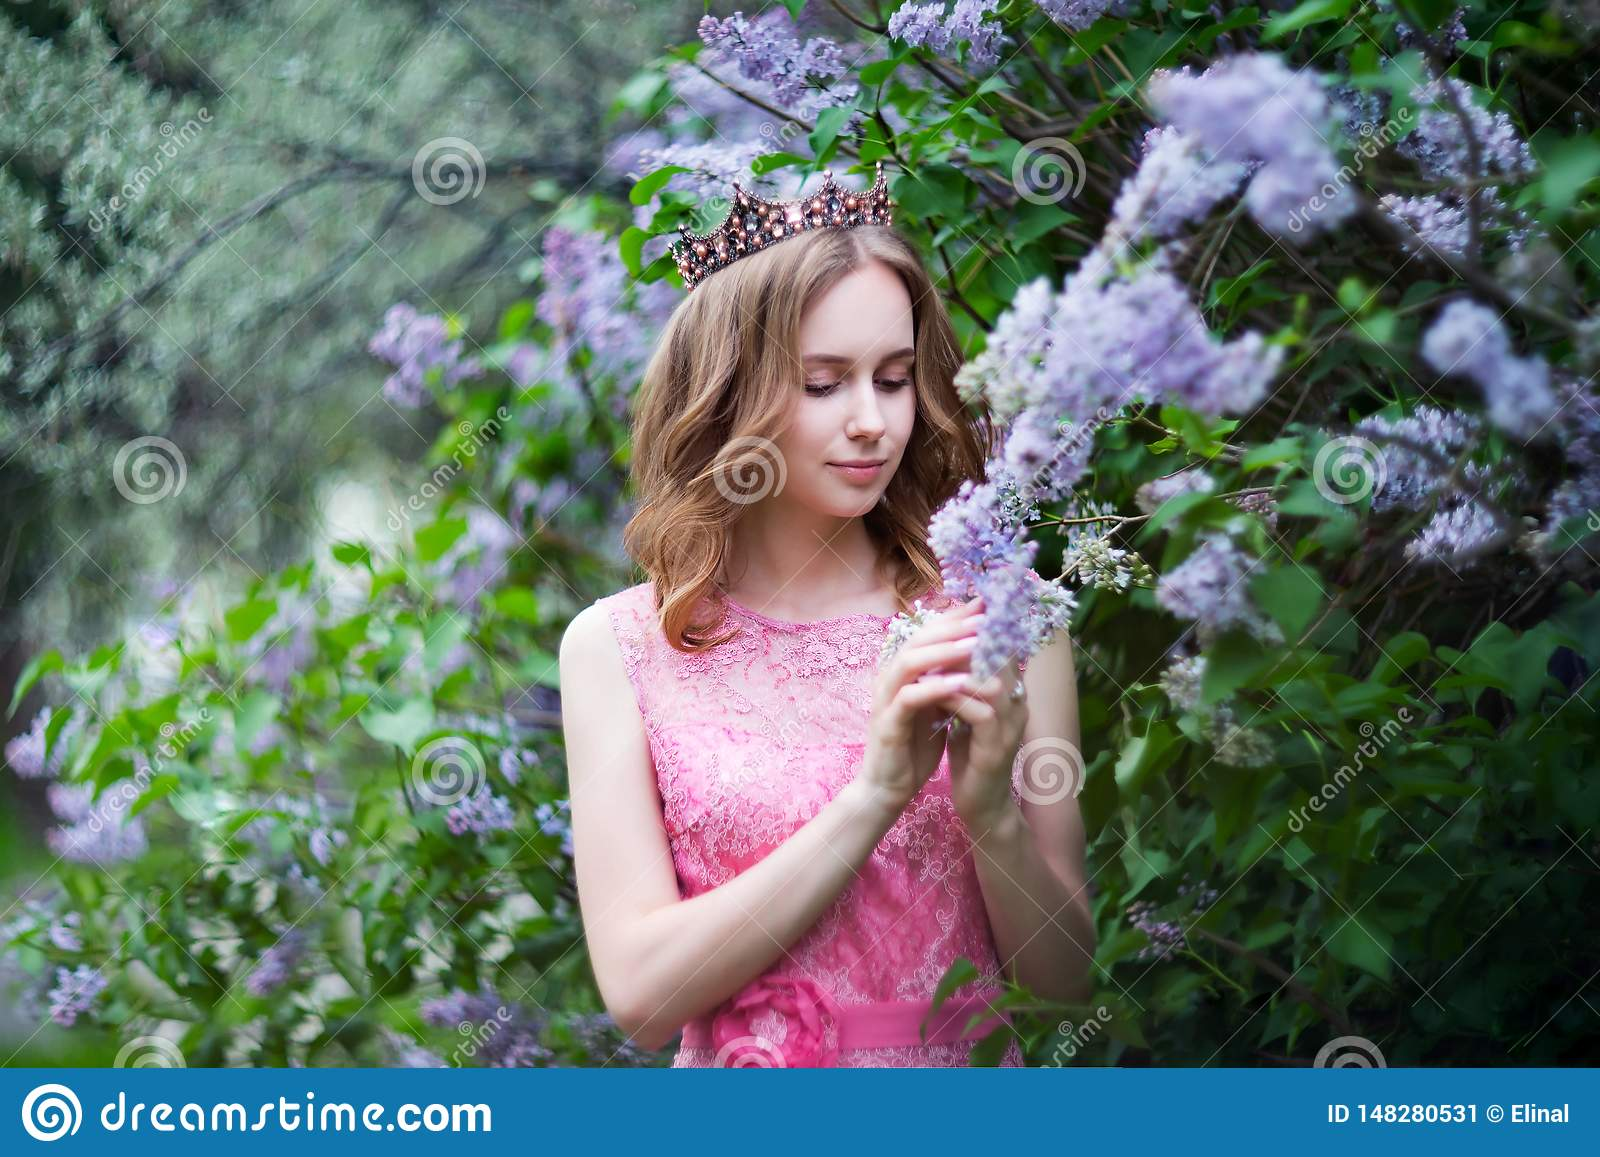 Woman, russian model in spring blossom lilac park